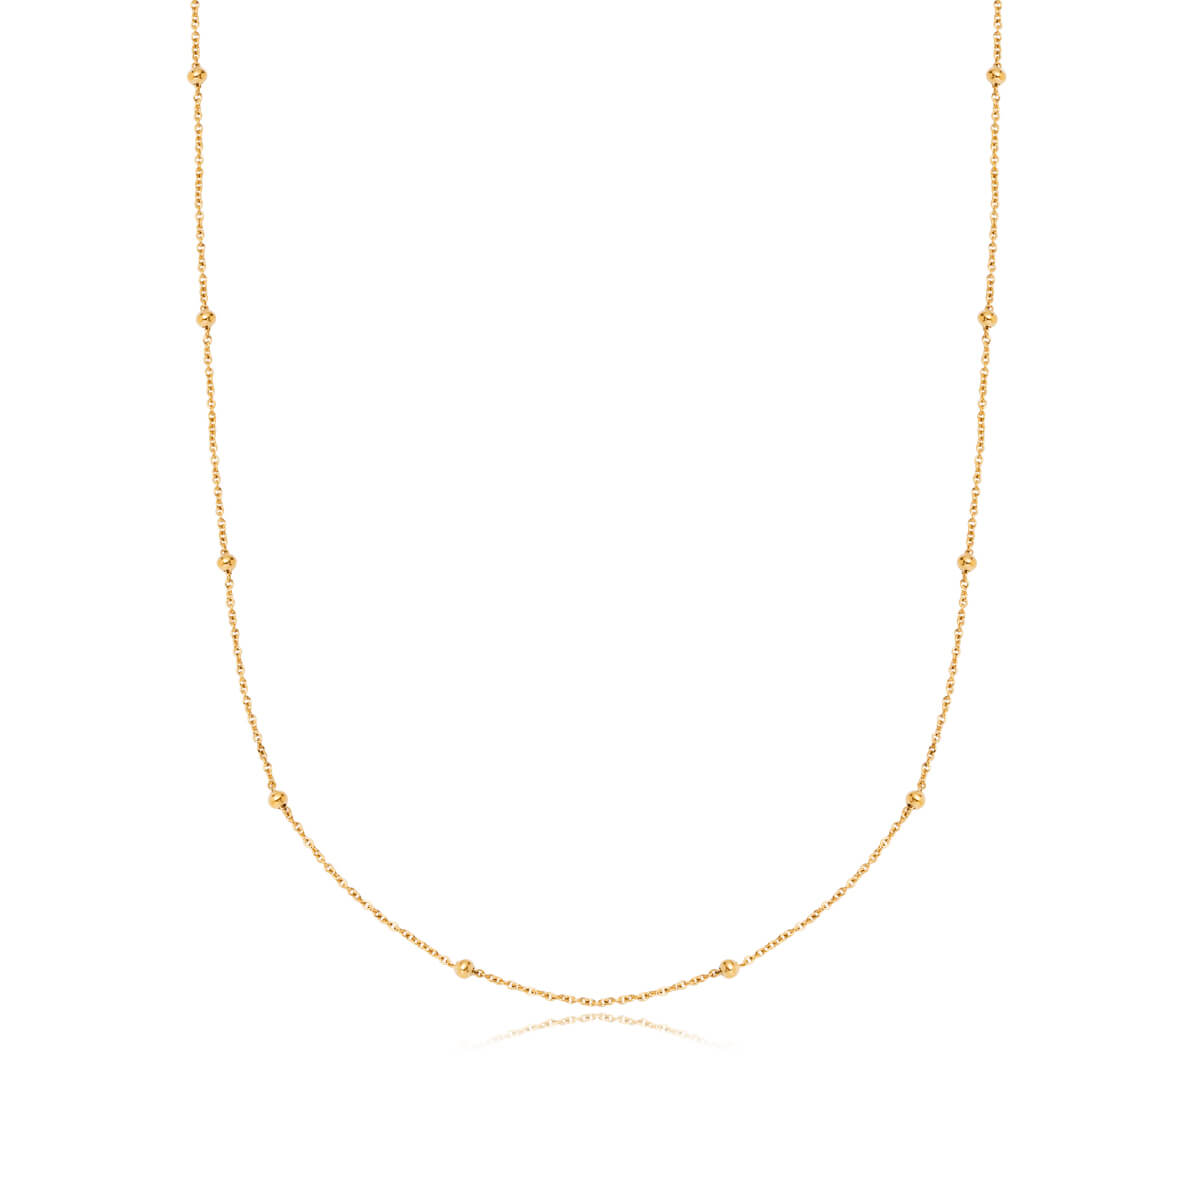 Test - Sphere Chain Necklace 20 in (Gold)